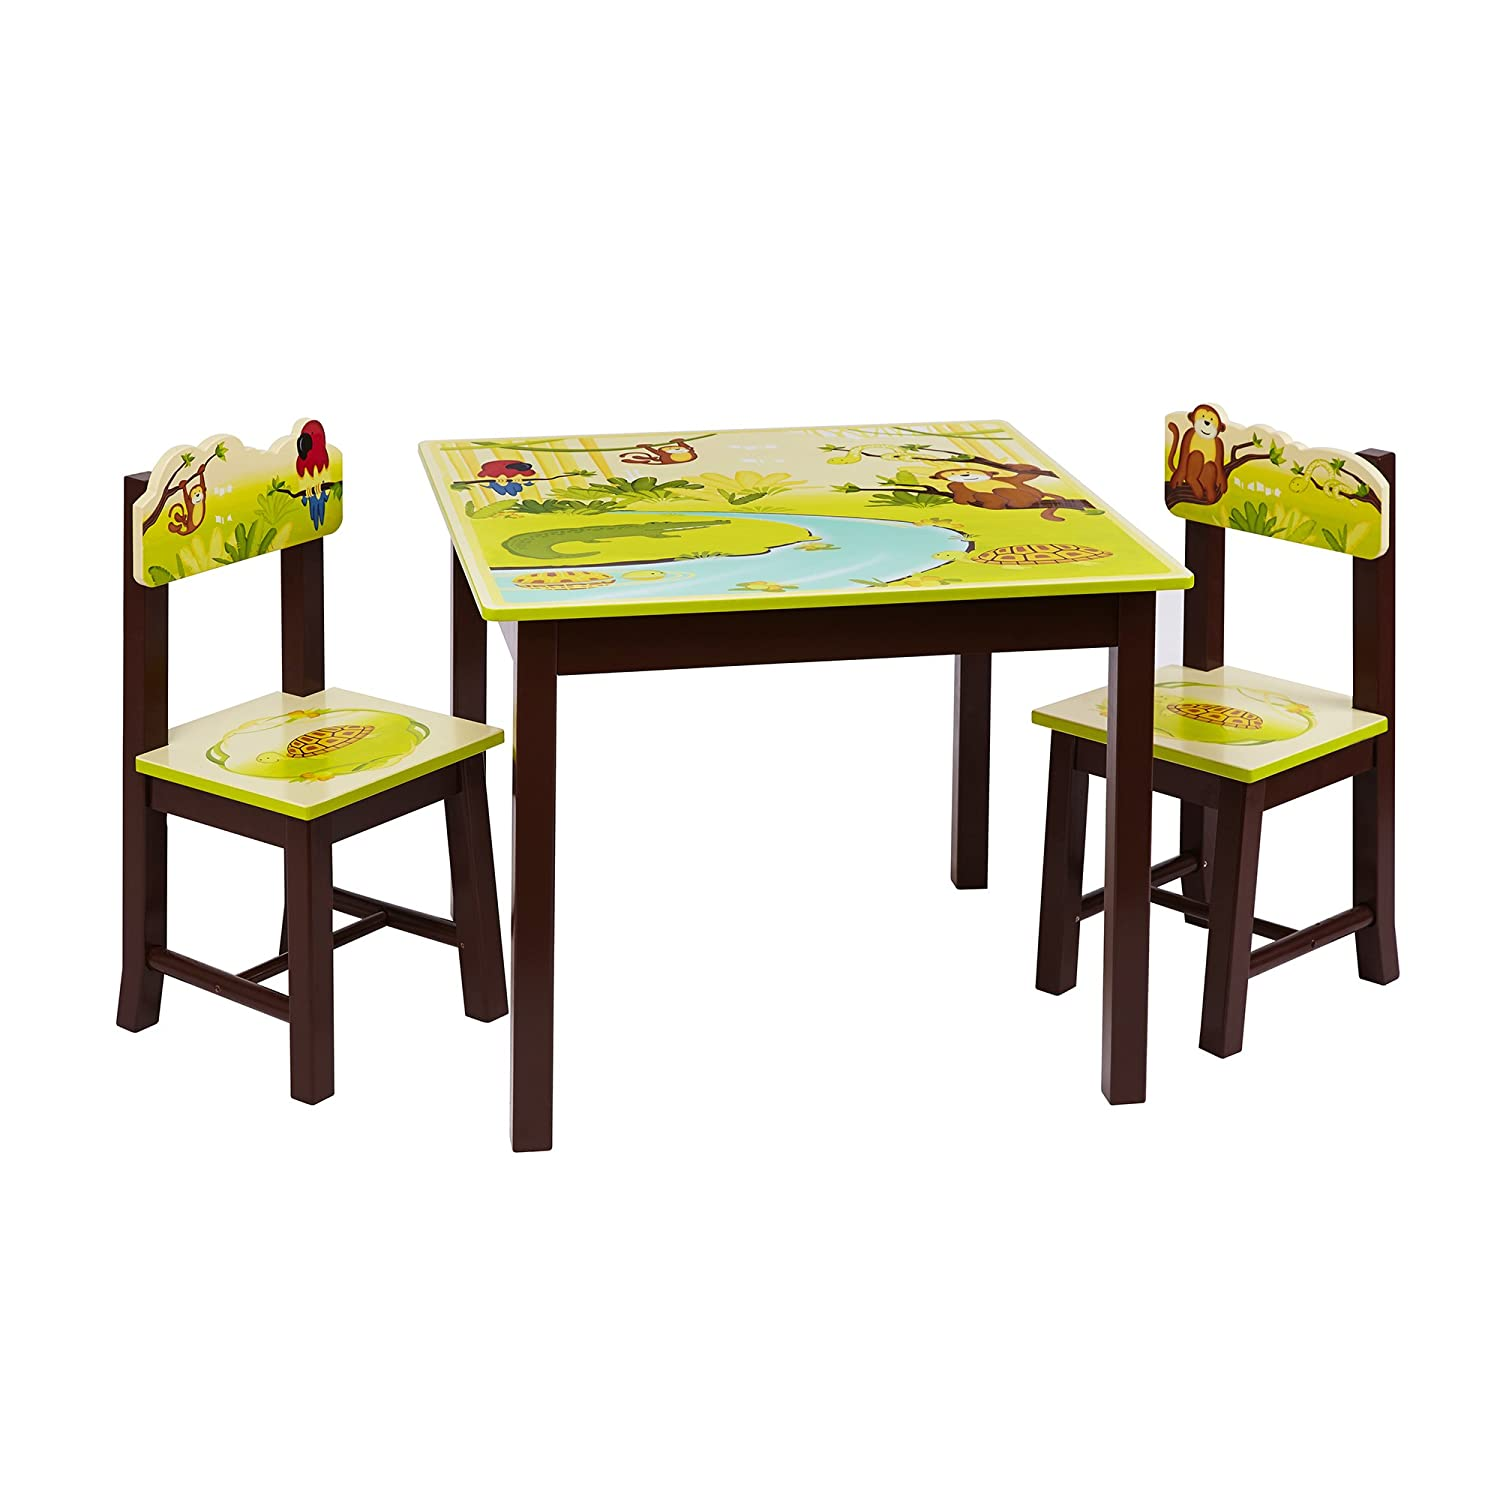 Tables And Chairs Set New in raleigh kitchen cabinets Home Decorating